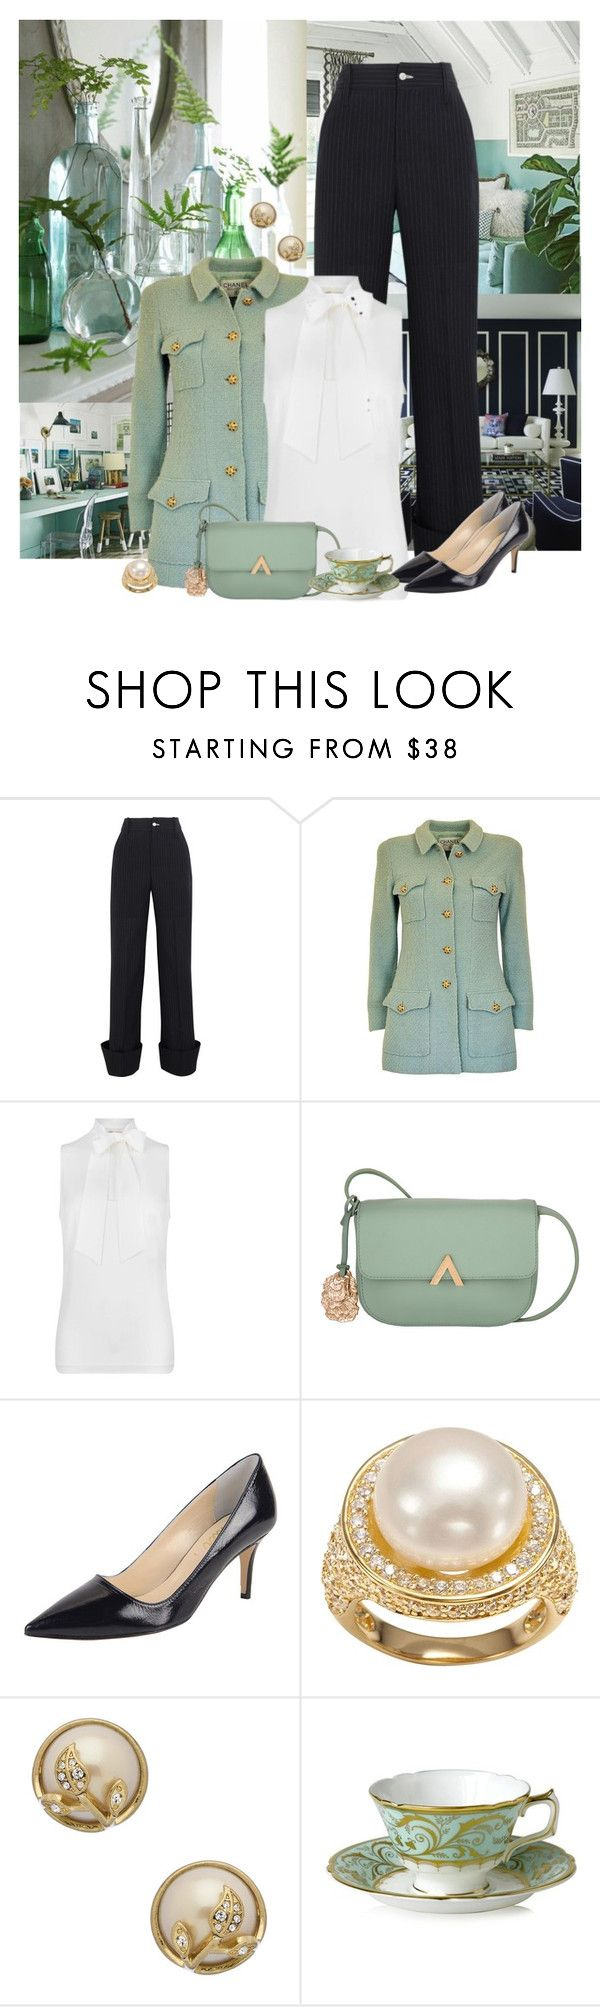 """""""Tailored"""" by kimzarad1 ❤ liked on Polyvore featuring Jacquemus, Chanel, MICHAEL Michael Kors, Butter Shoes, SOPHIE MILLER, Carolee and Royal Crown Derby"""